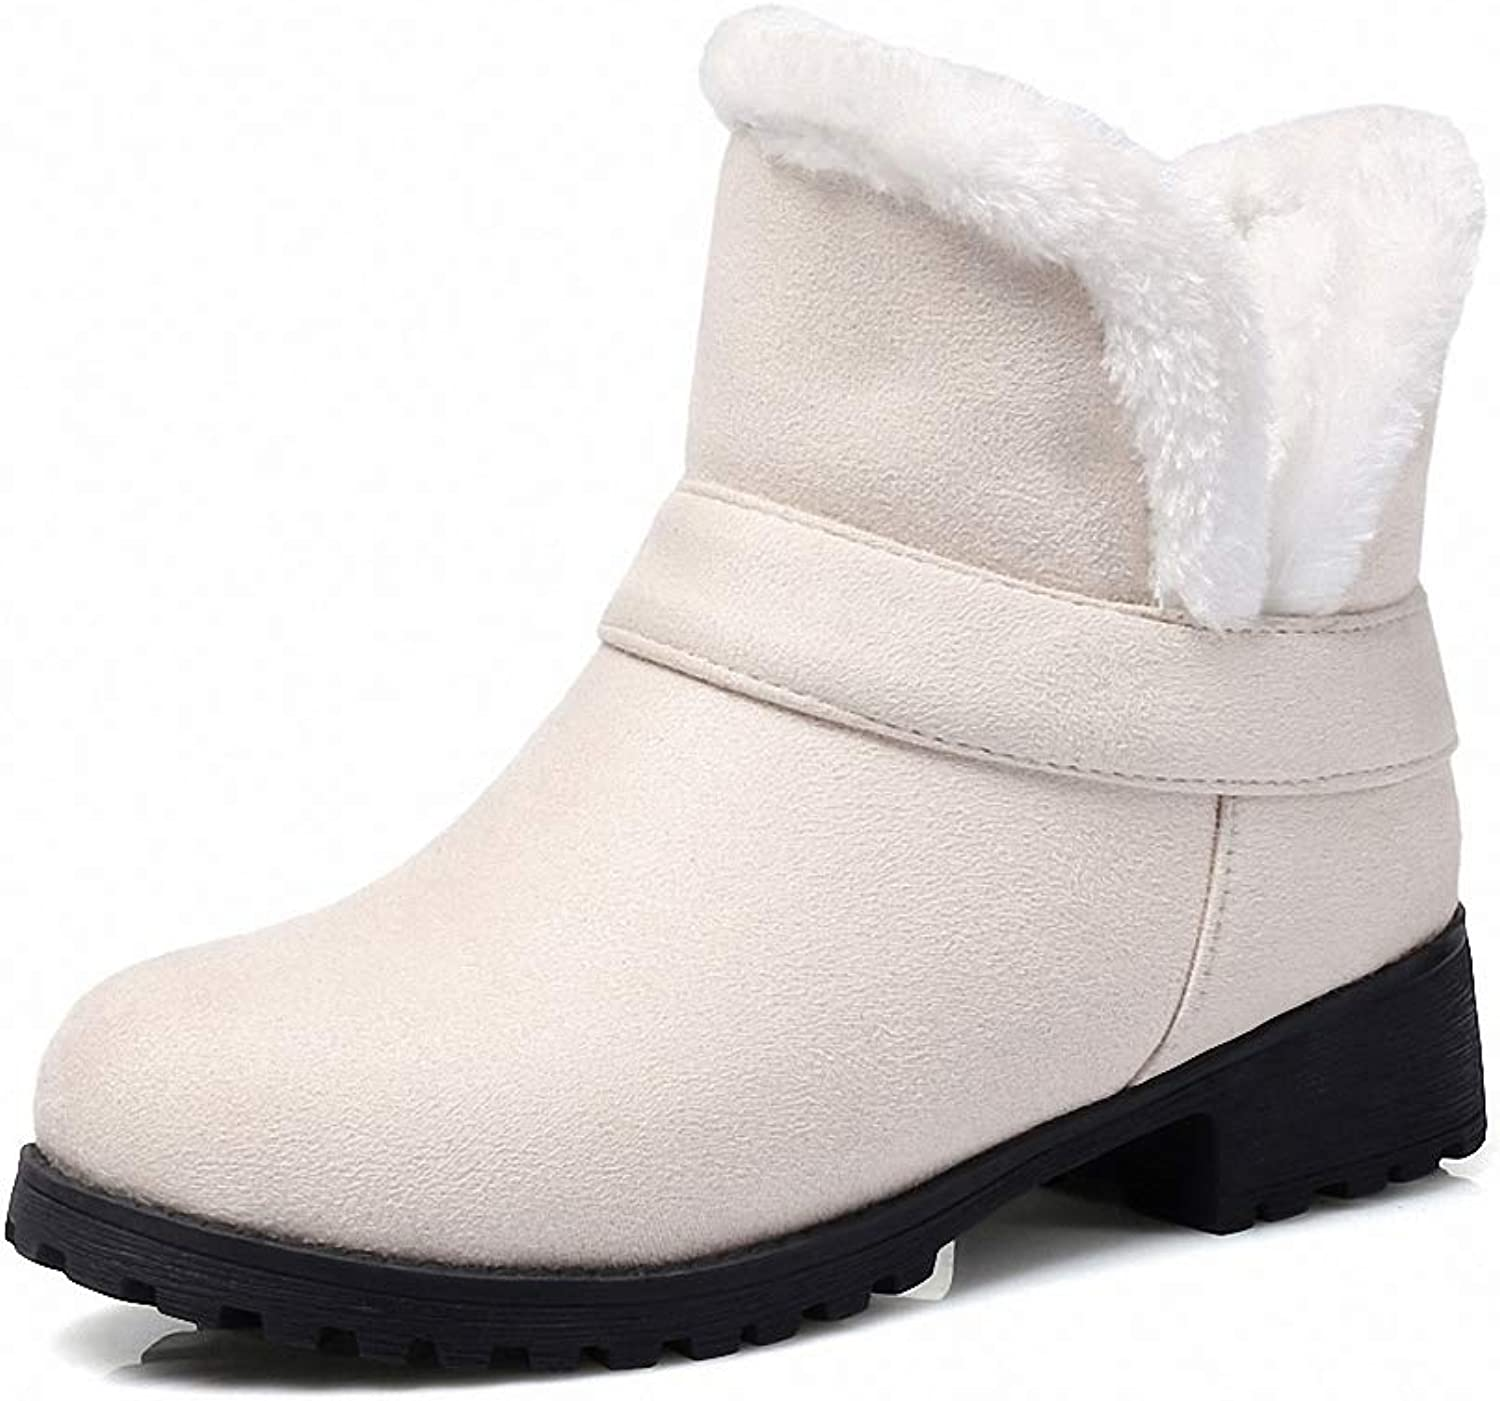 Womens Backpacking Boots Large Size 30-48 Slip on Comfortable Women shoes Woman Winter Warm Plush Woman Snow Boots Warm Fur Ankle Boots Women